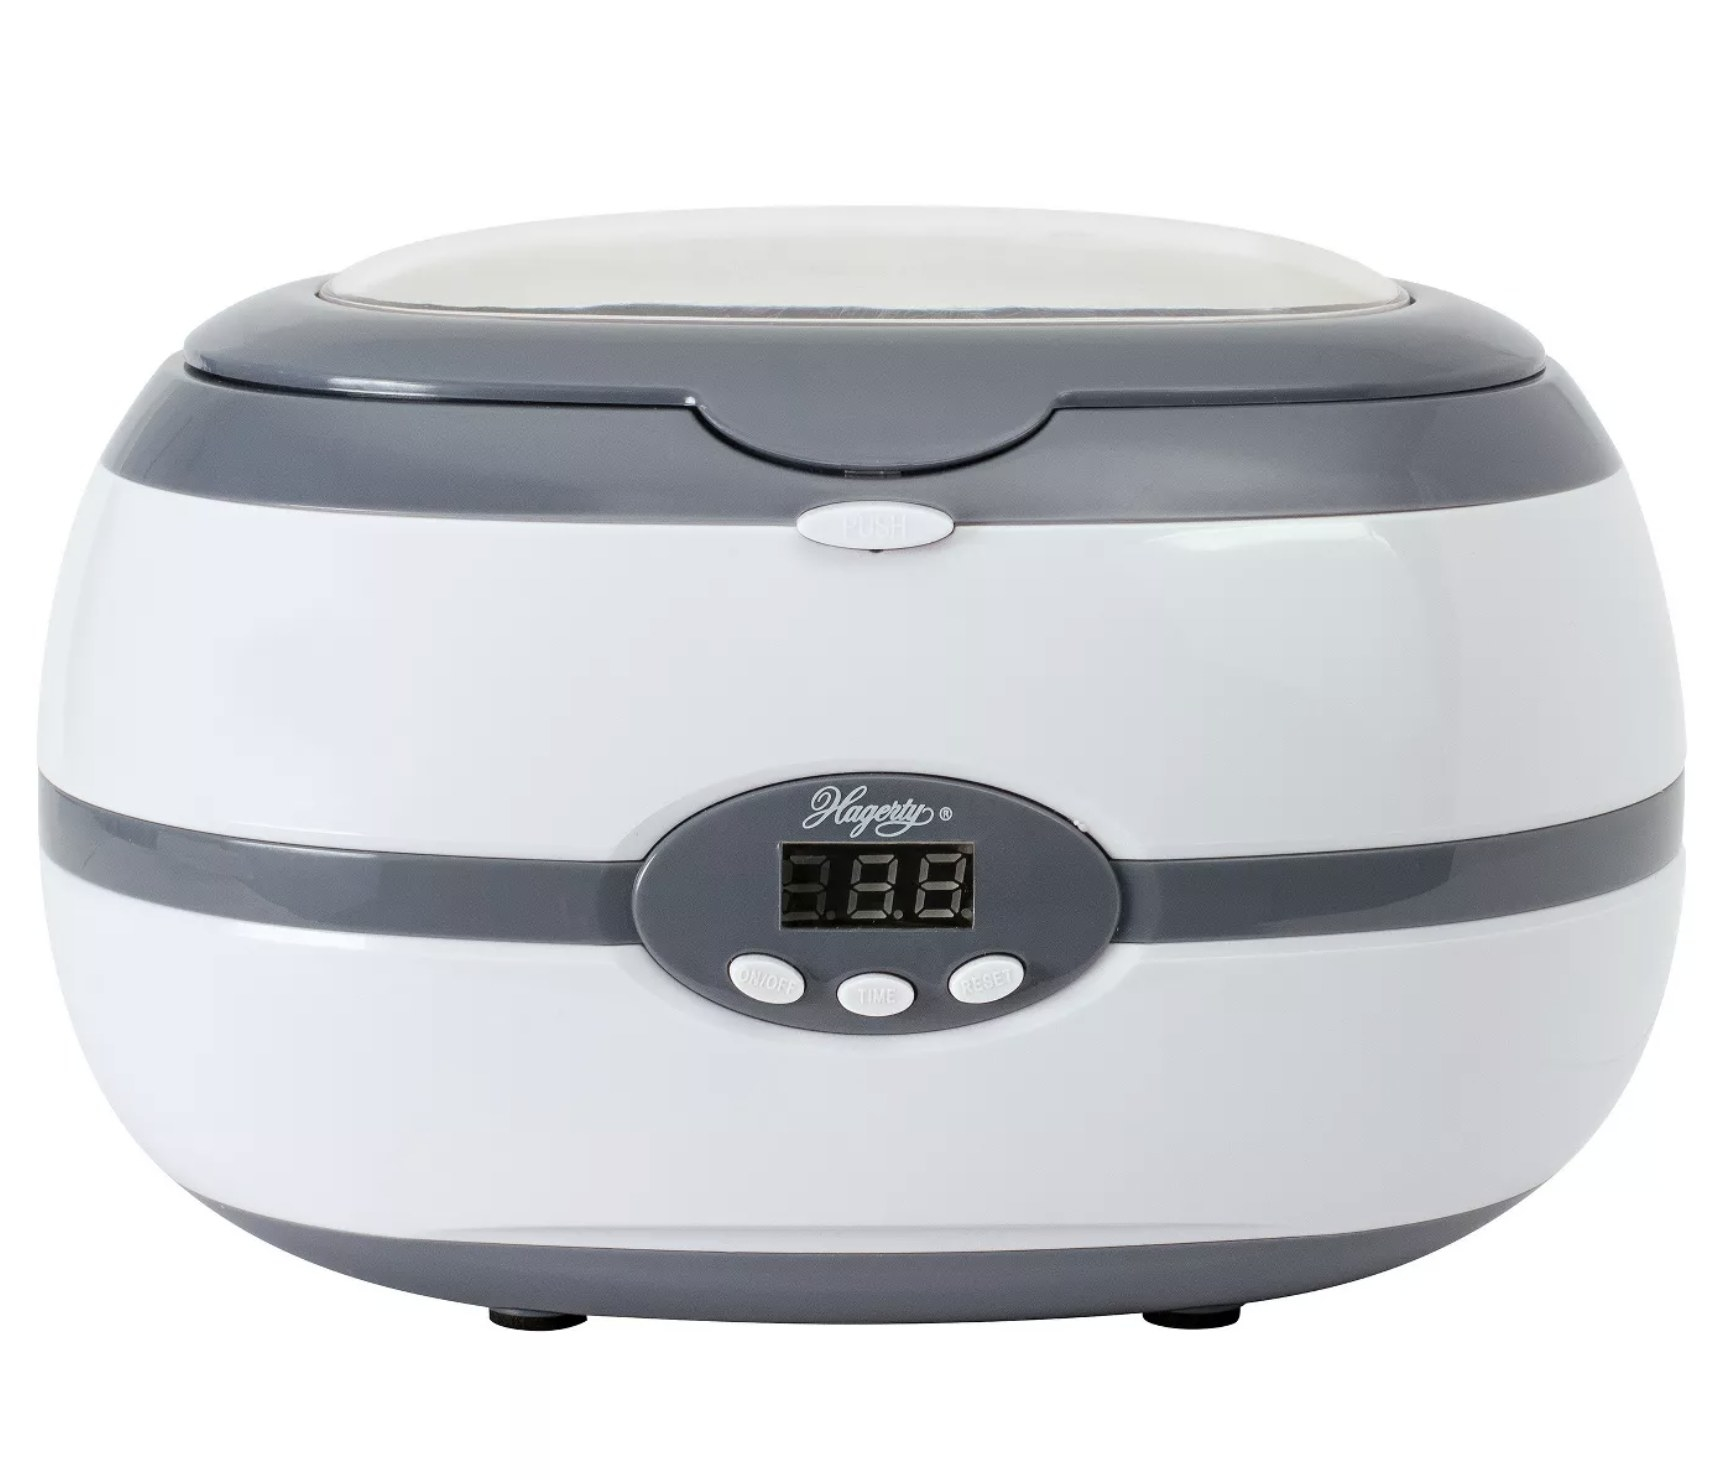 A white plastic jewelry cleaning machine with gray accents and a small digital screen with buttons